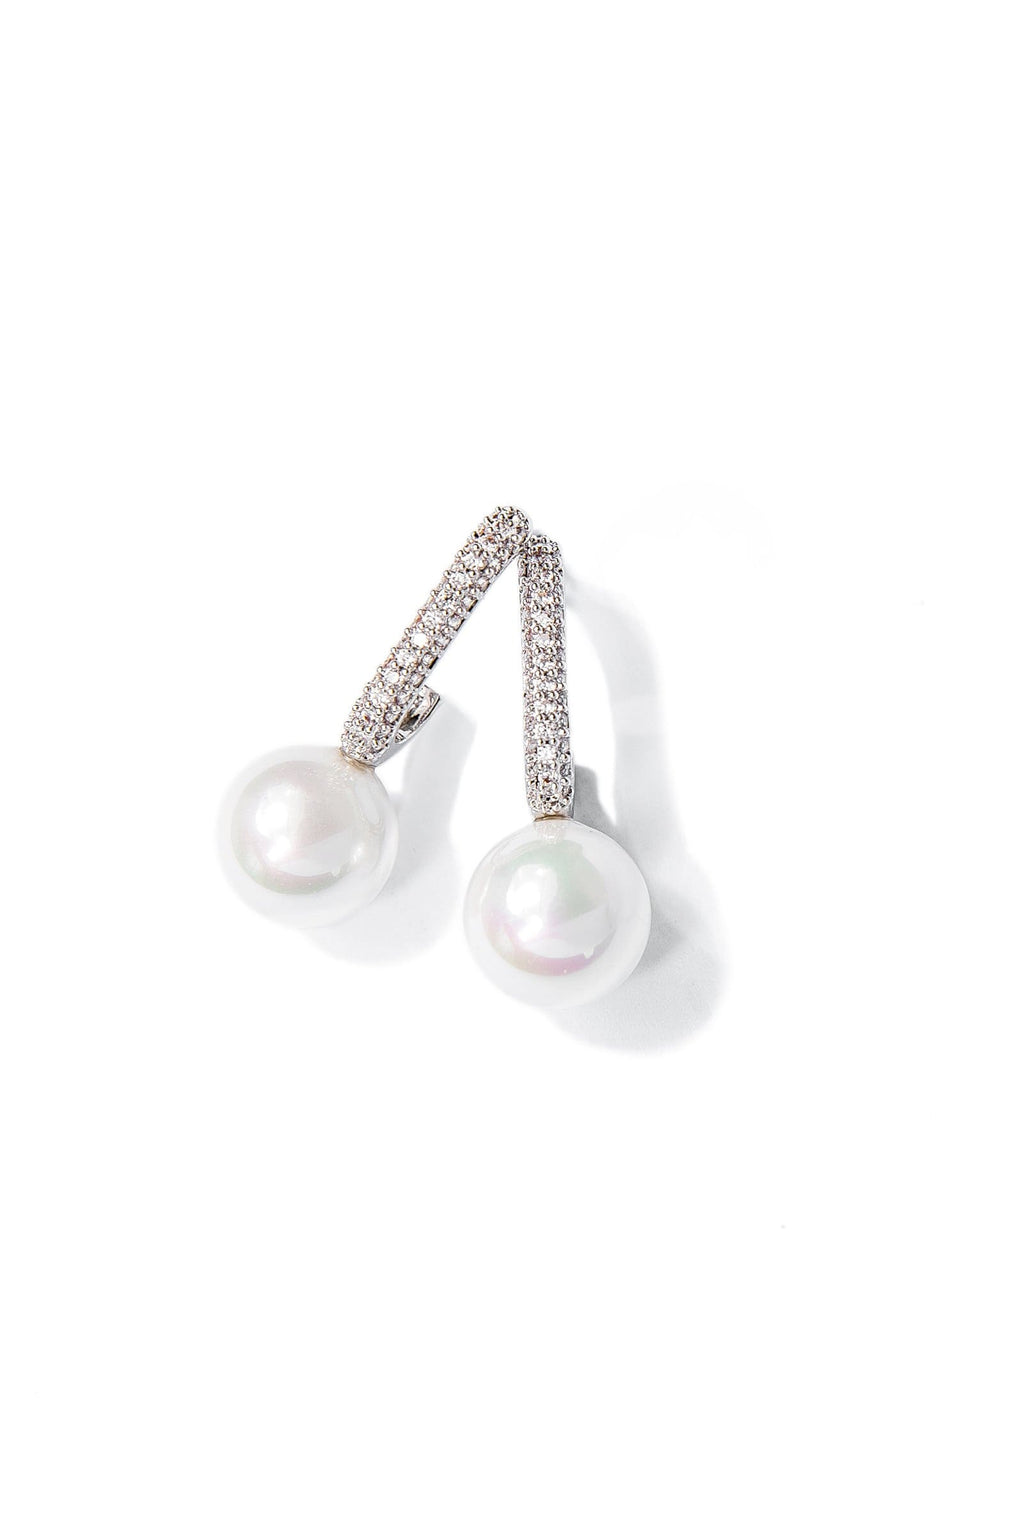 Ornament Earrings by J.ING women's clothing and accessories